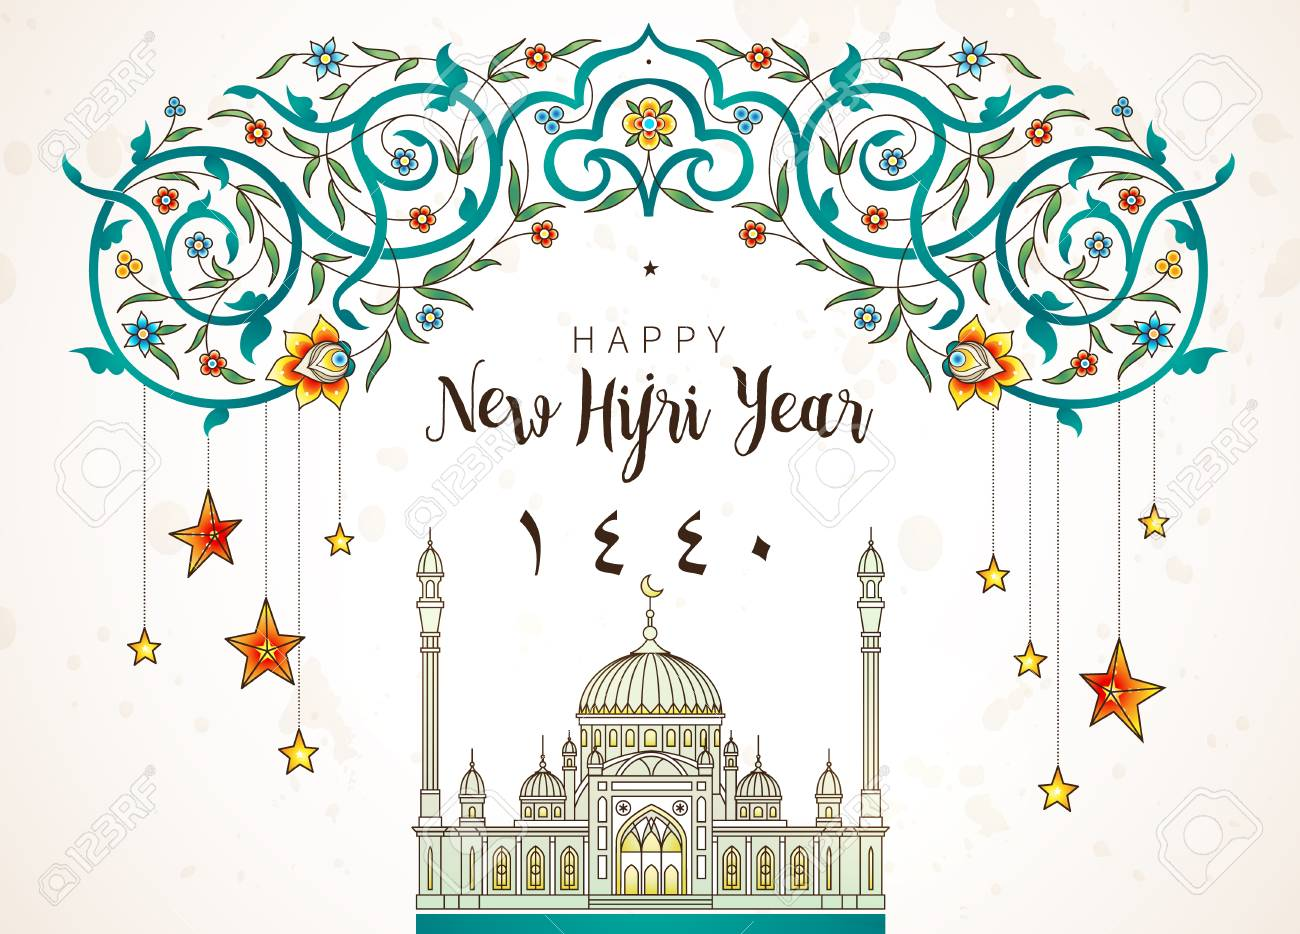 happy new hijri year 1440 vector holiday card with calligraphy